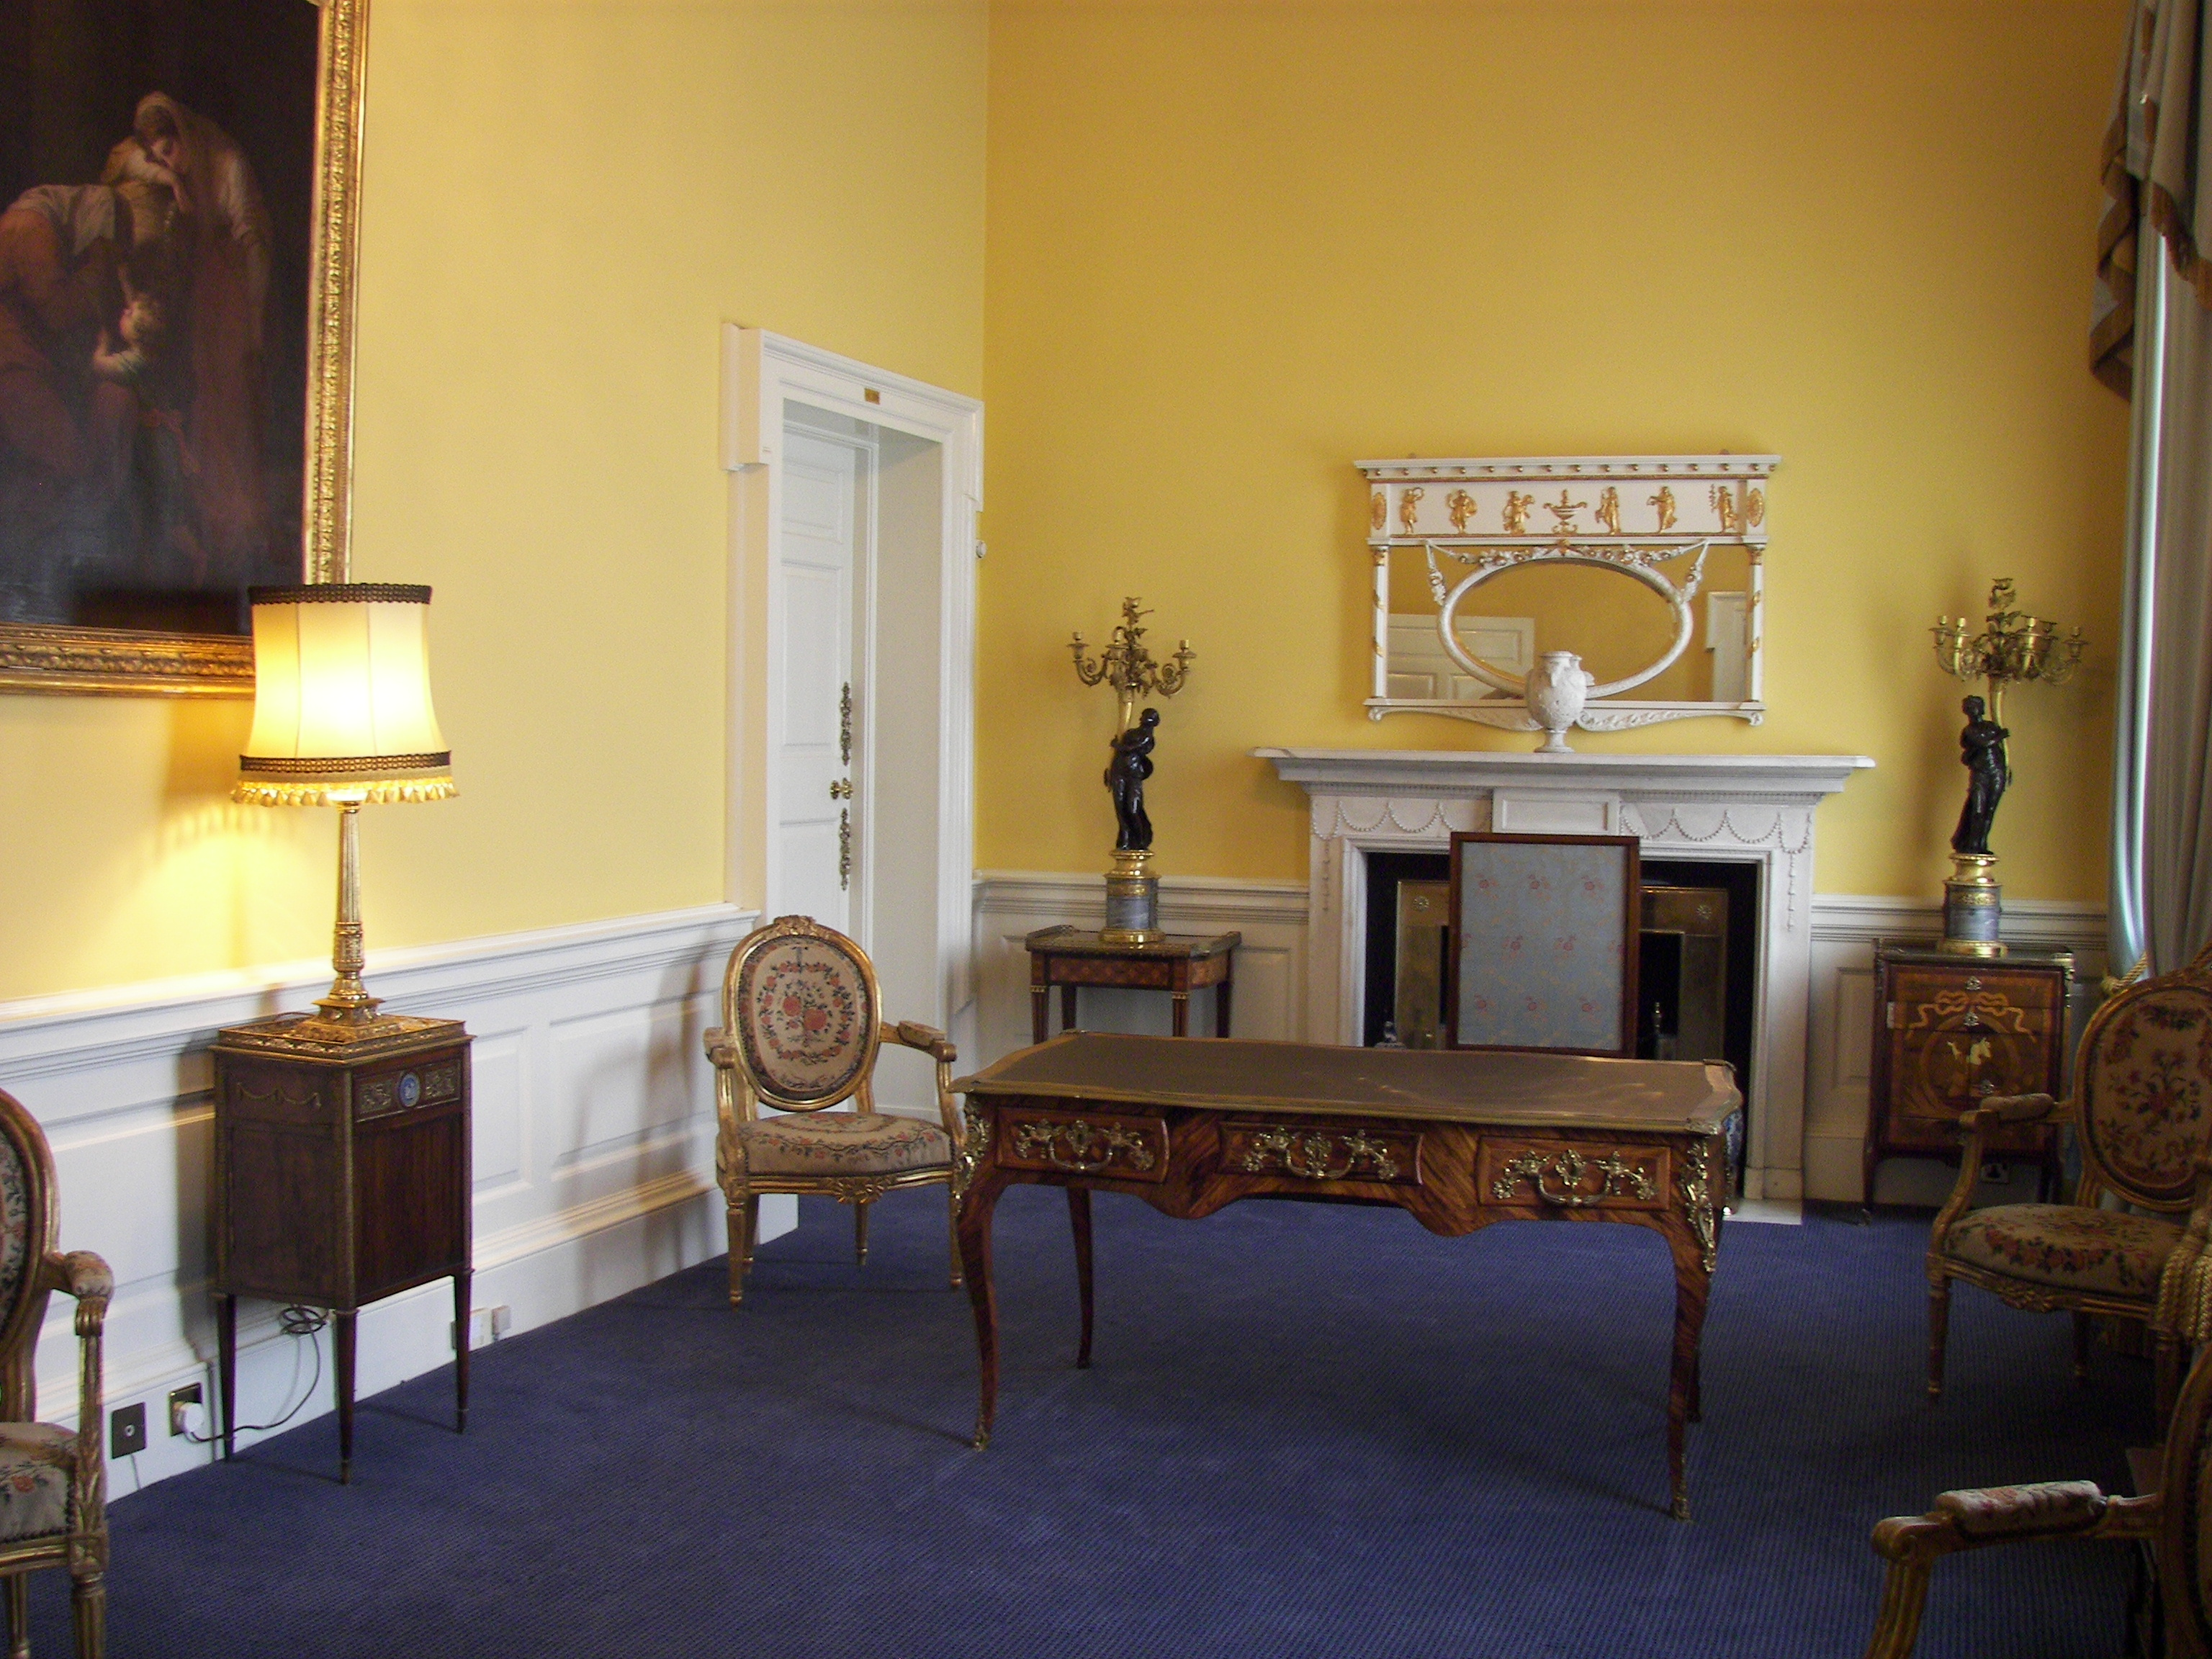 Http Commons Wikimedia Org Wiki File Dublin Castle Yellow Room 2 Jpg